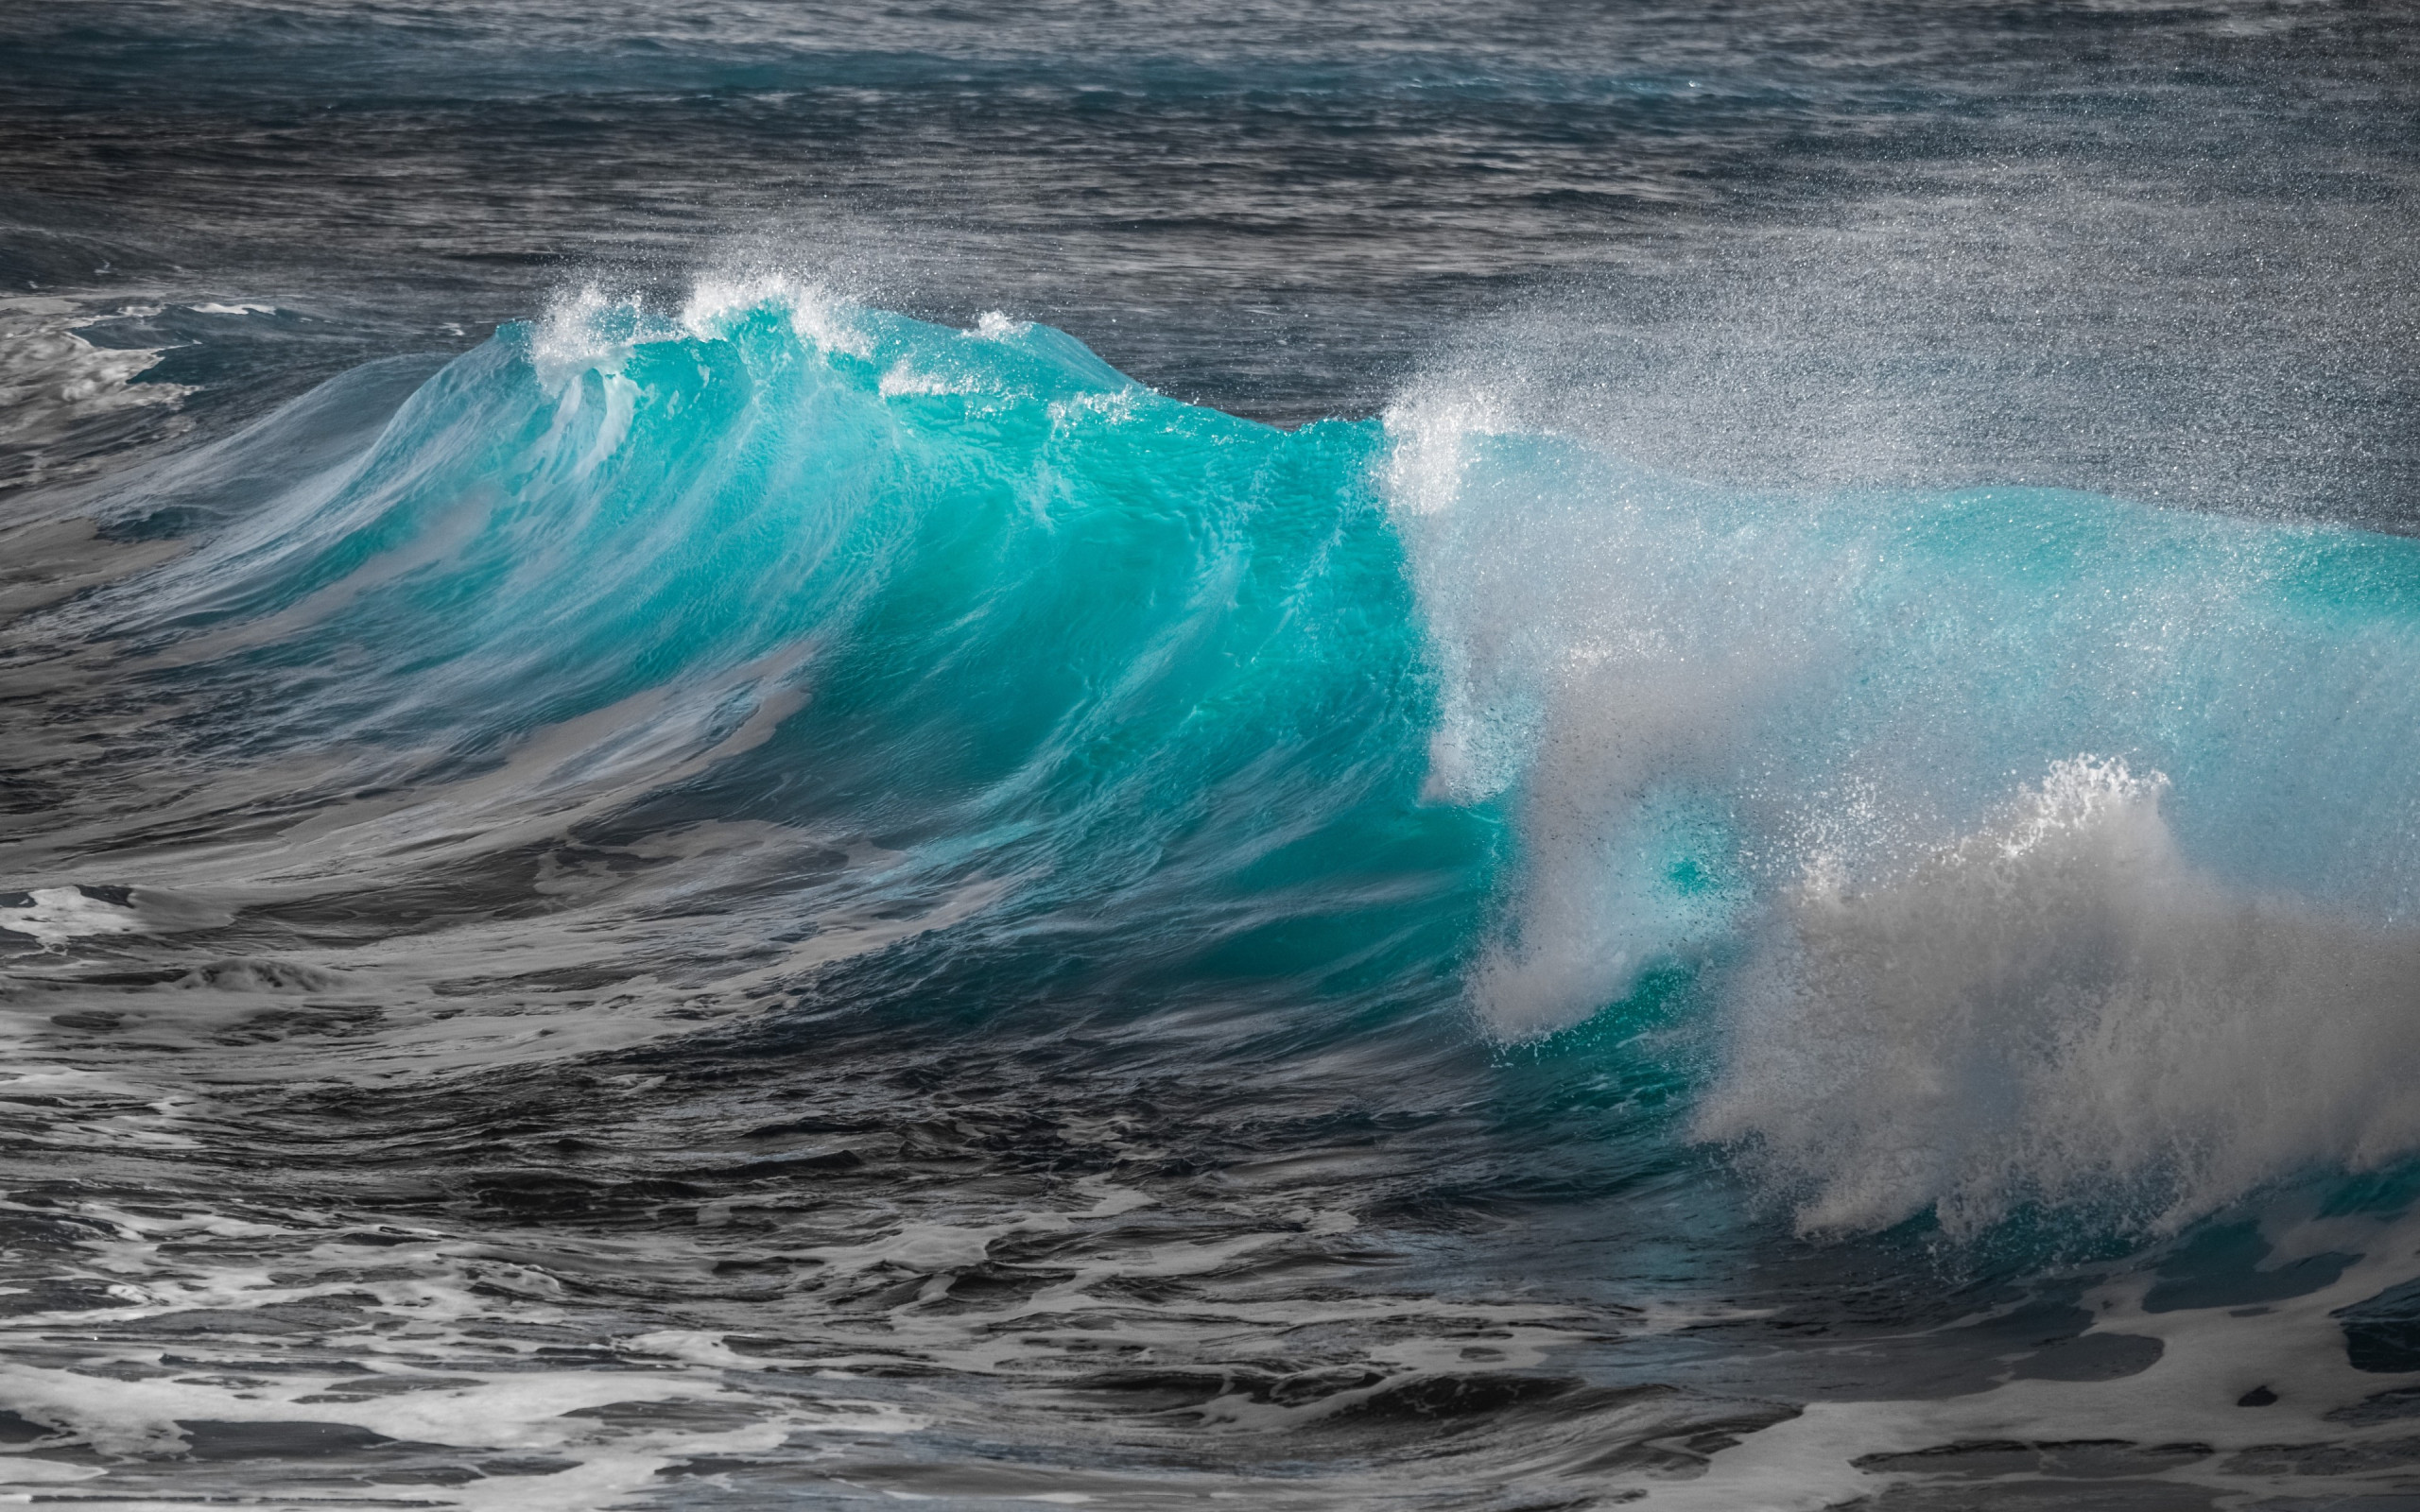 download wallpaper  turquoise sea wave 2560x1600